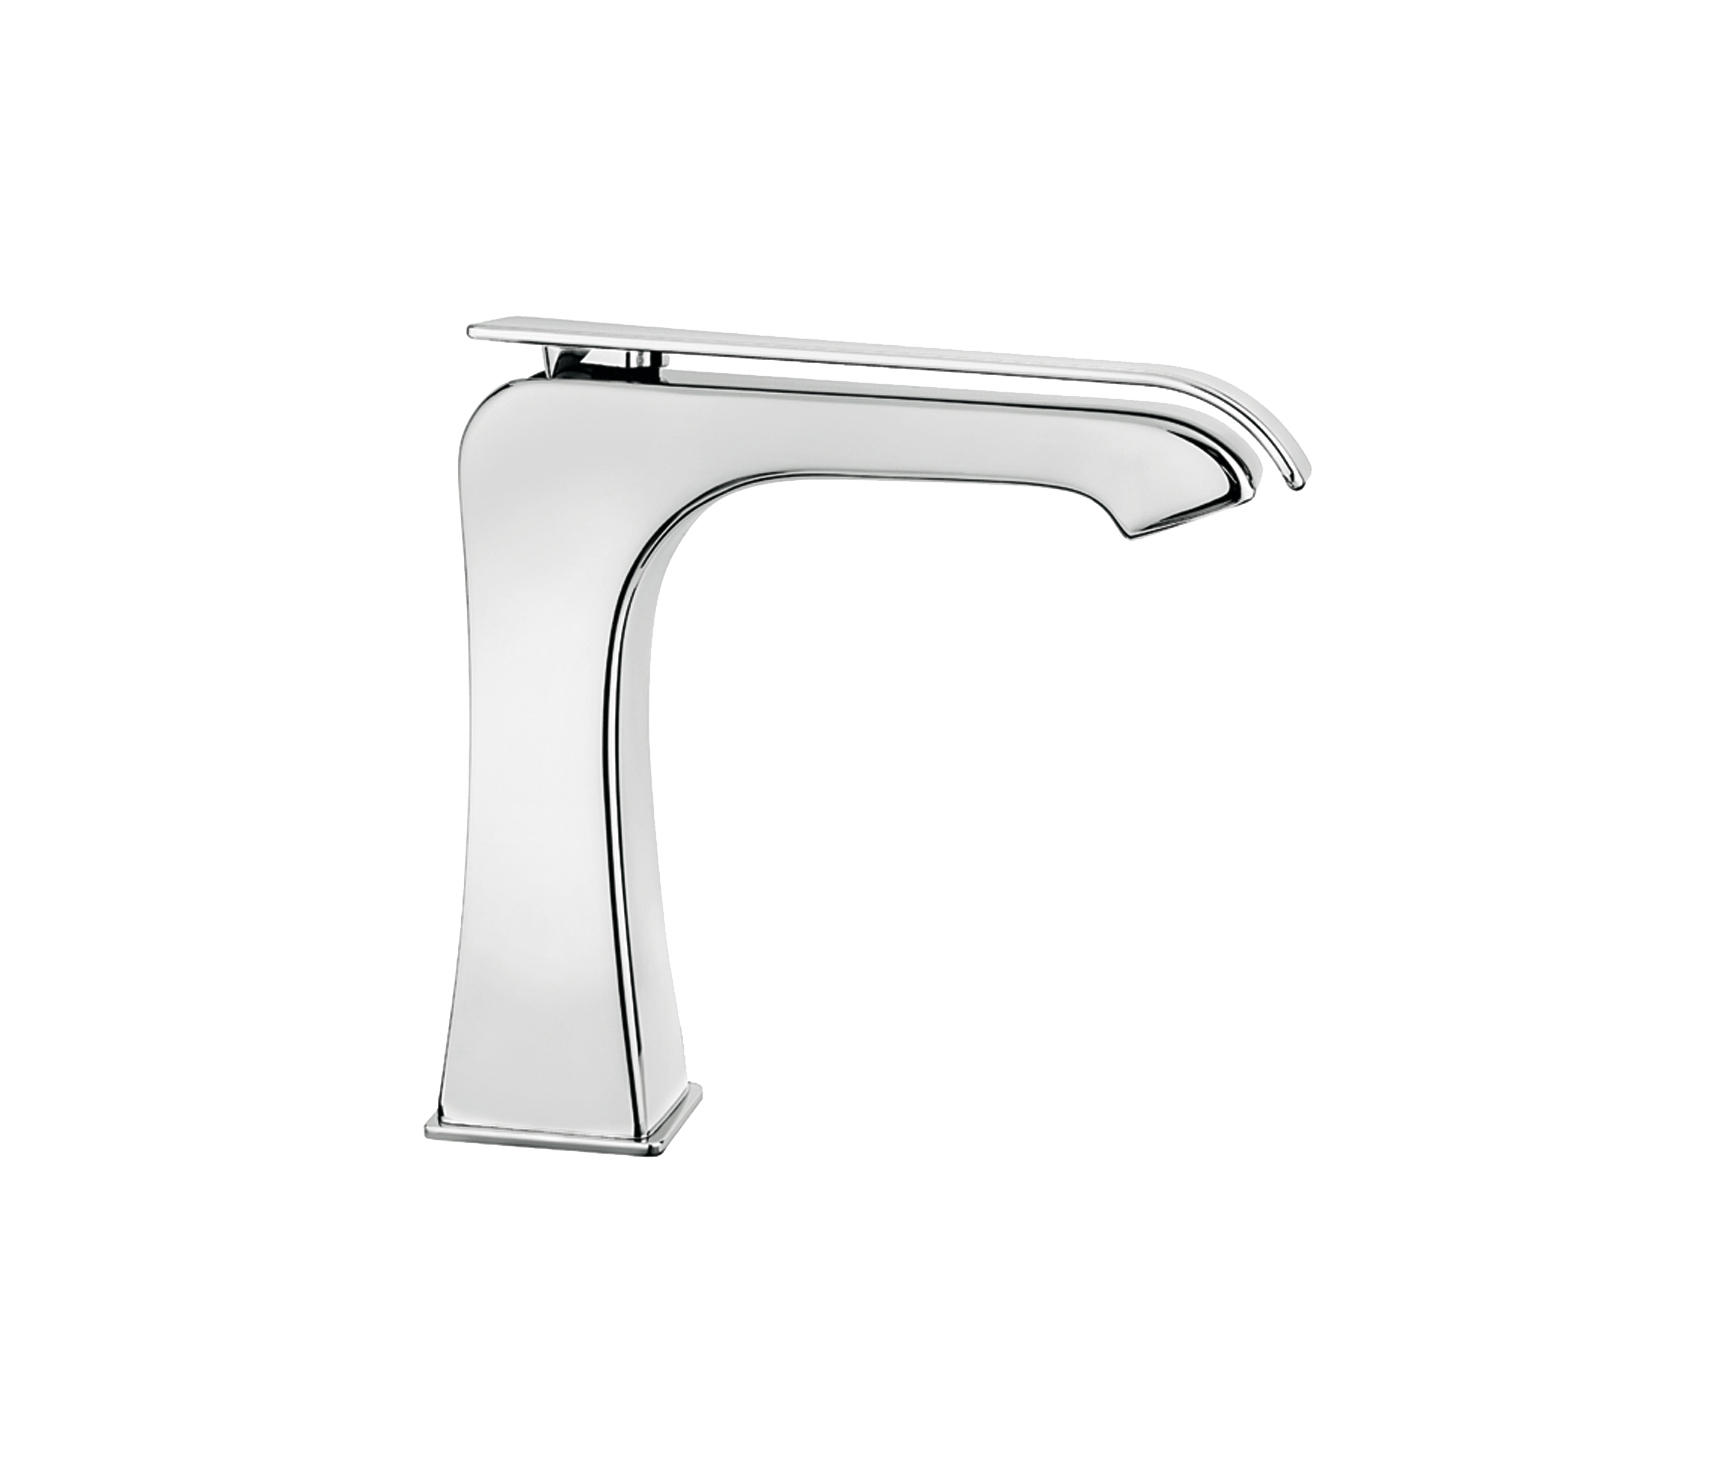 PLAYONE DÉCO 87 - Wash basin taps from Fir Italia   Architonic